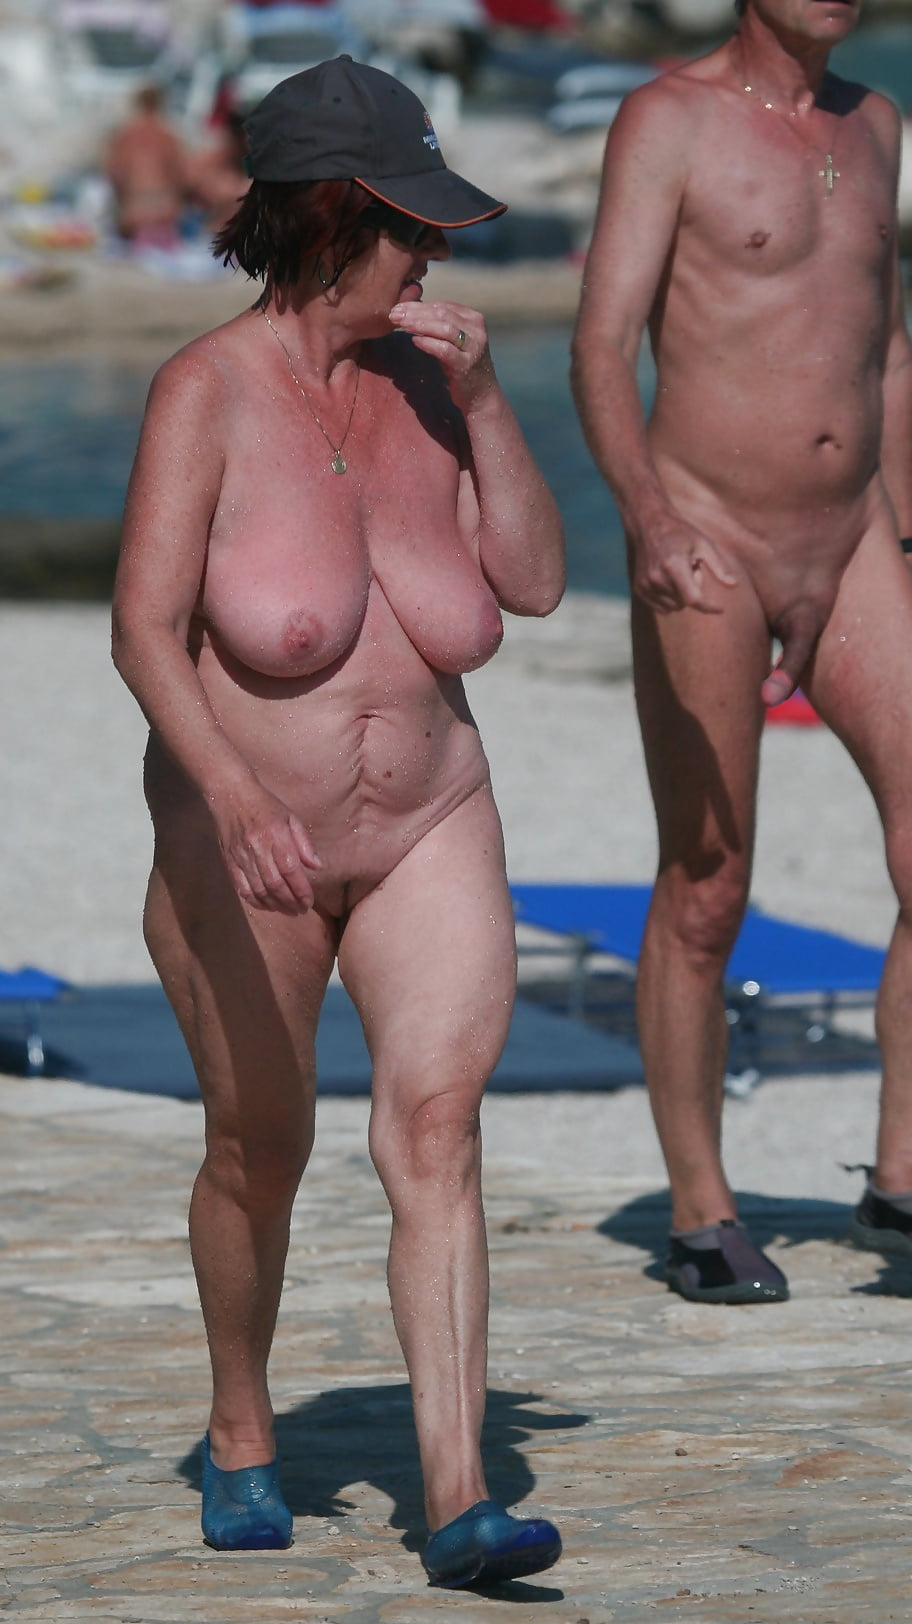 Old person at nudist beach, croatian babe fuck